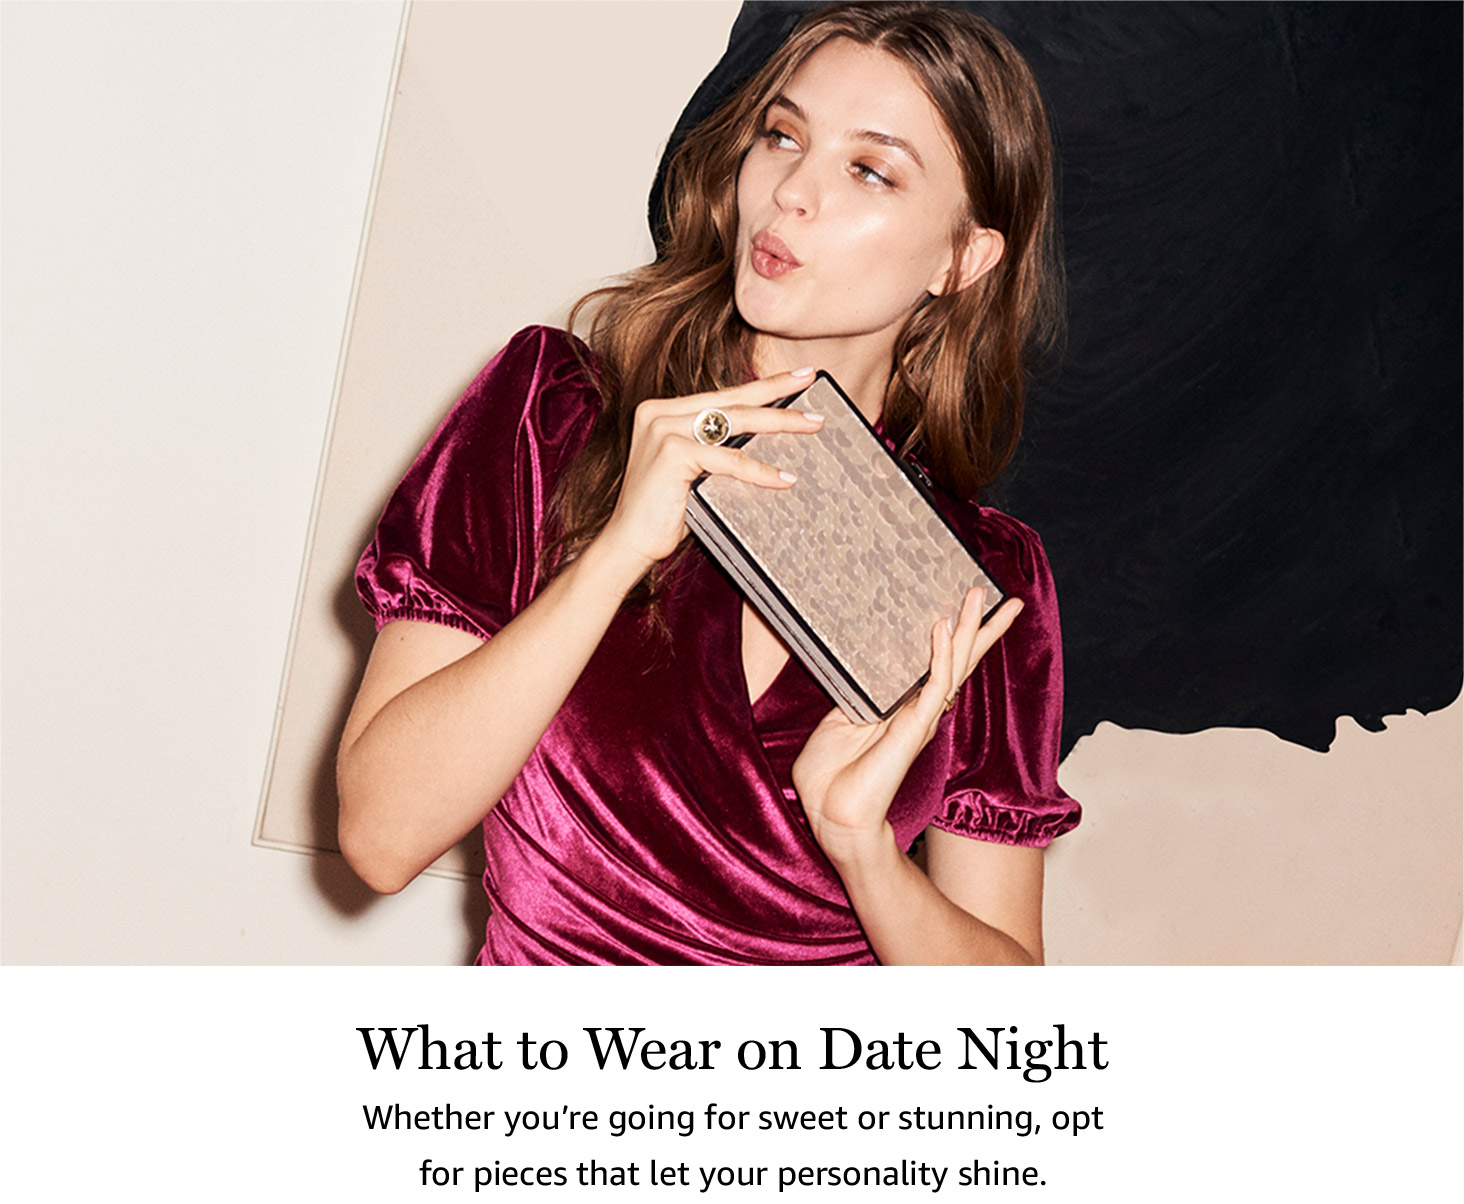 What to Wear on Date Night